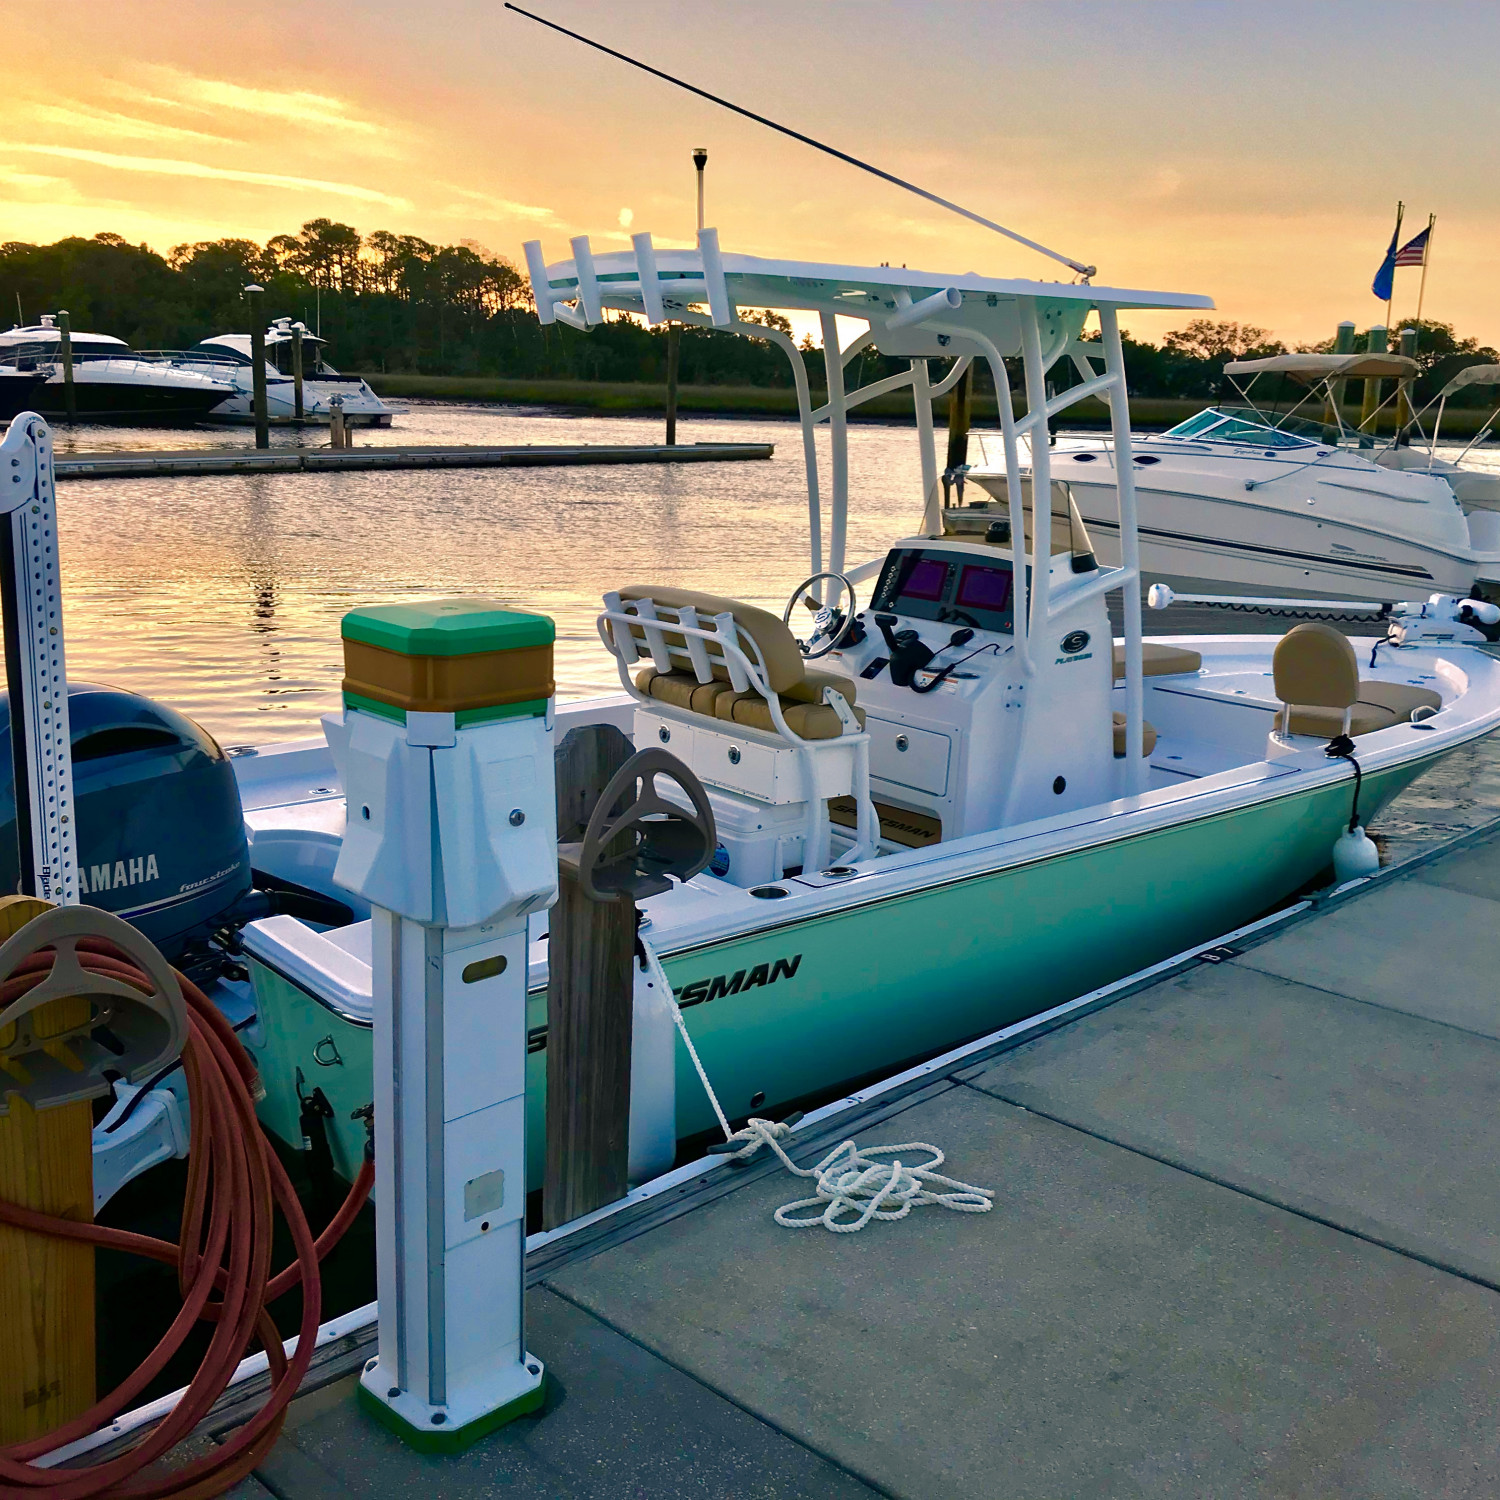 Title: First Sunset - On board their Sportsman Masters 227 Bay Boat - Location: Jax Beach, FL. Participating in the Photo Contest #SportsmanMay2018